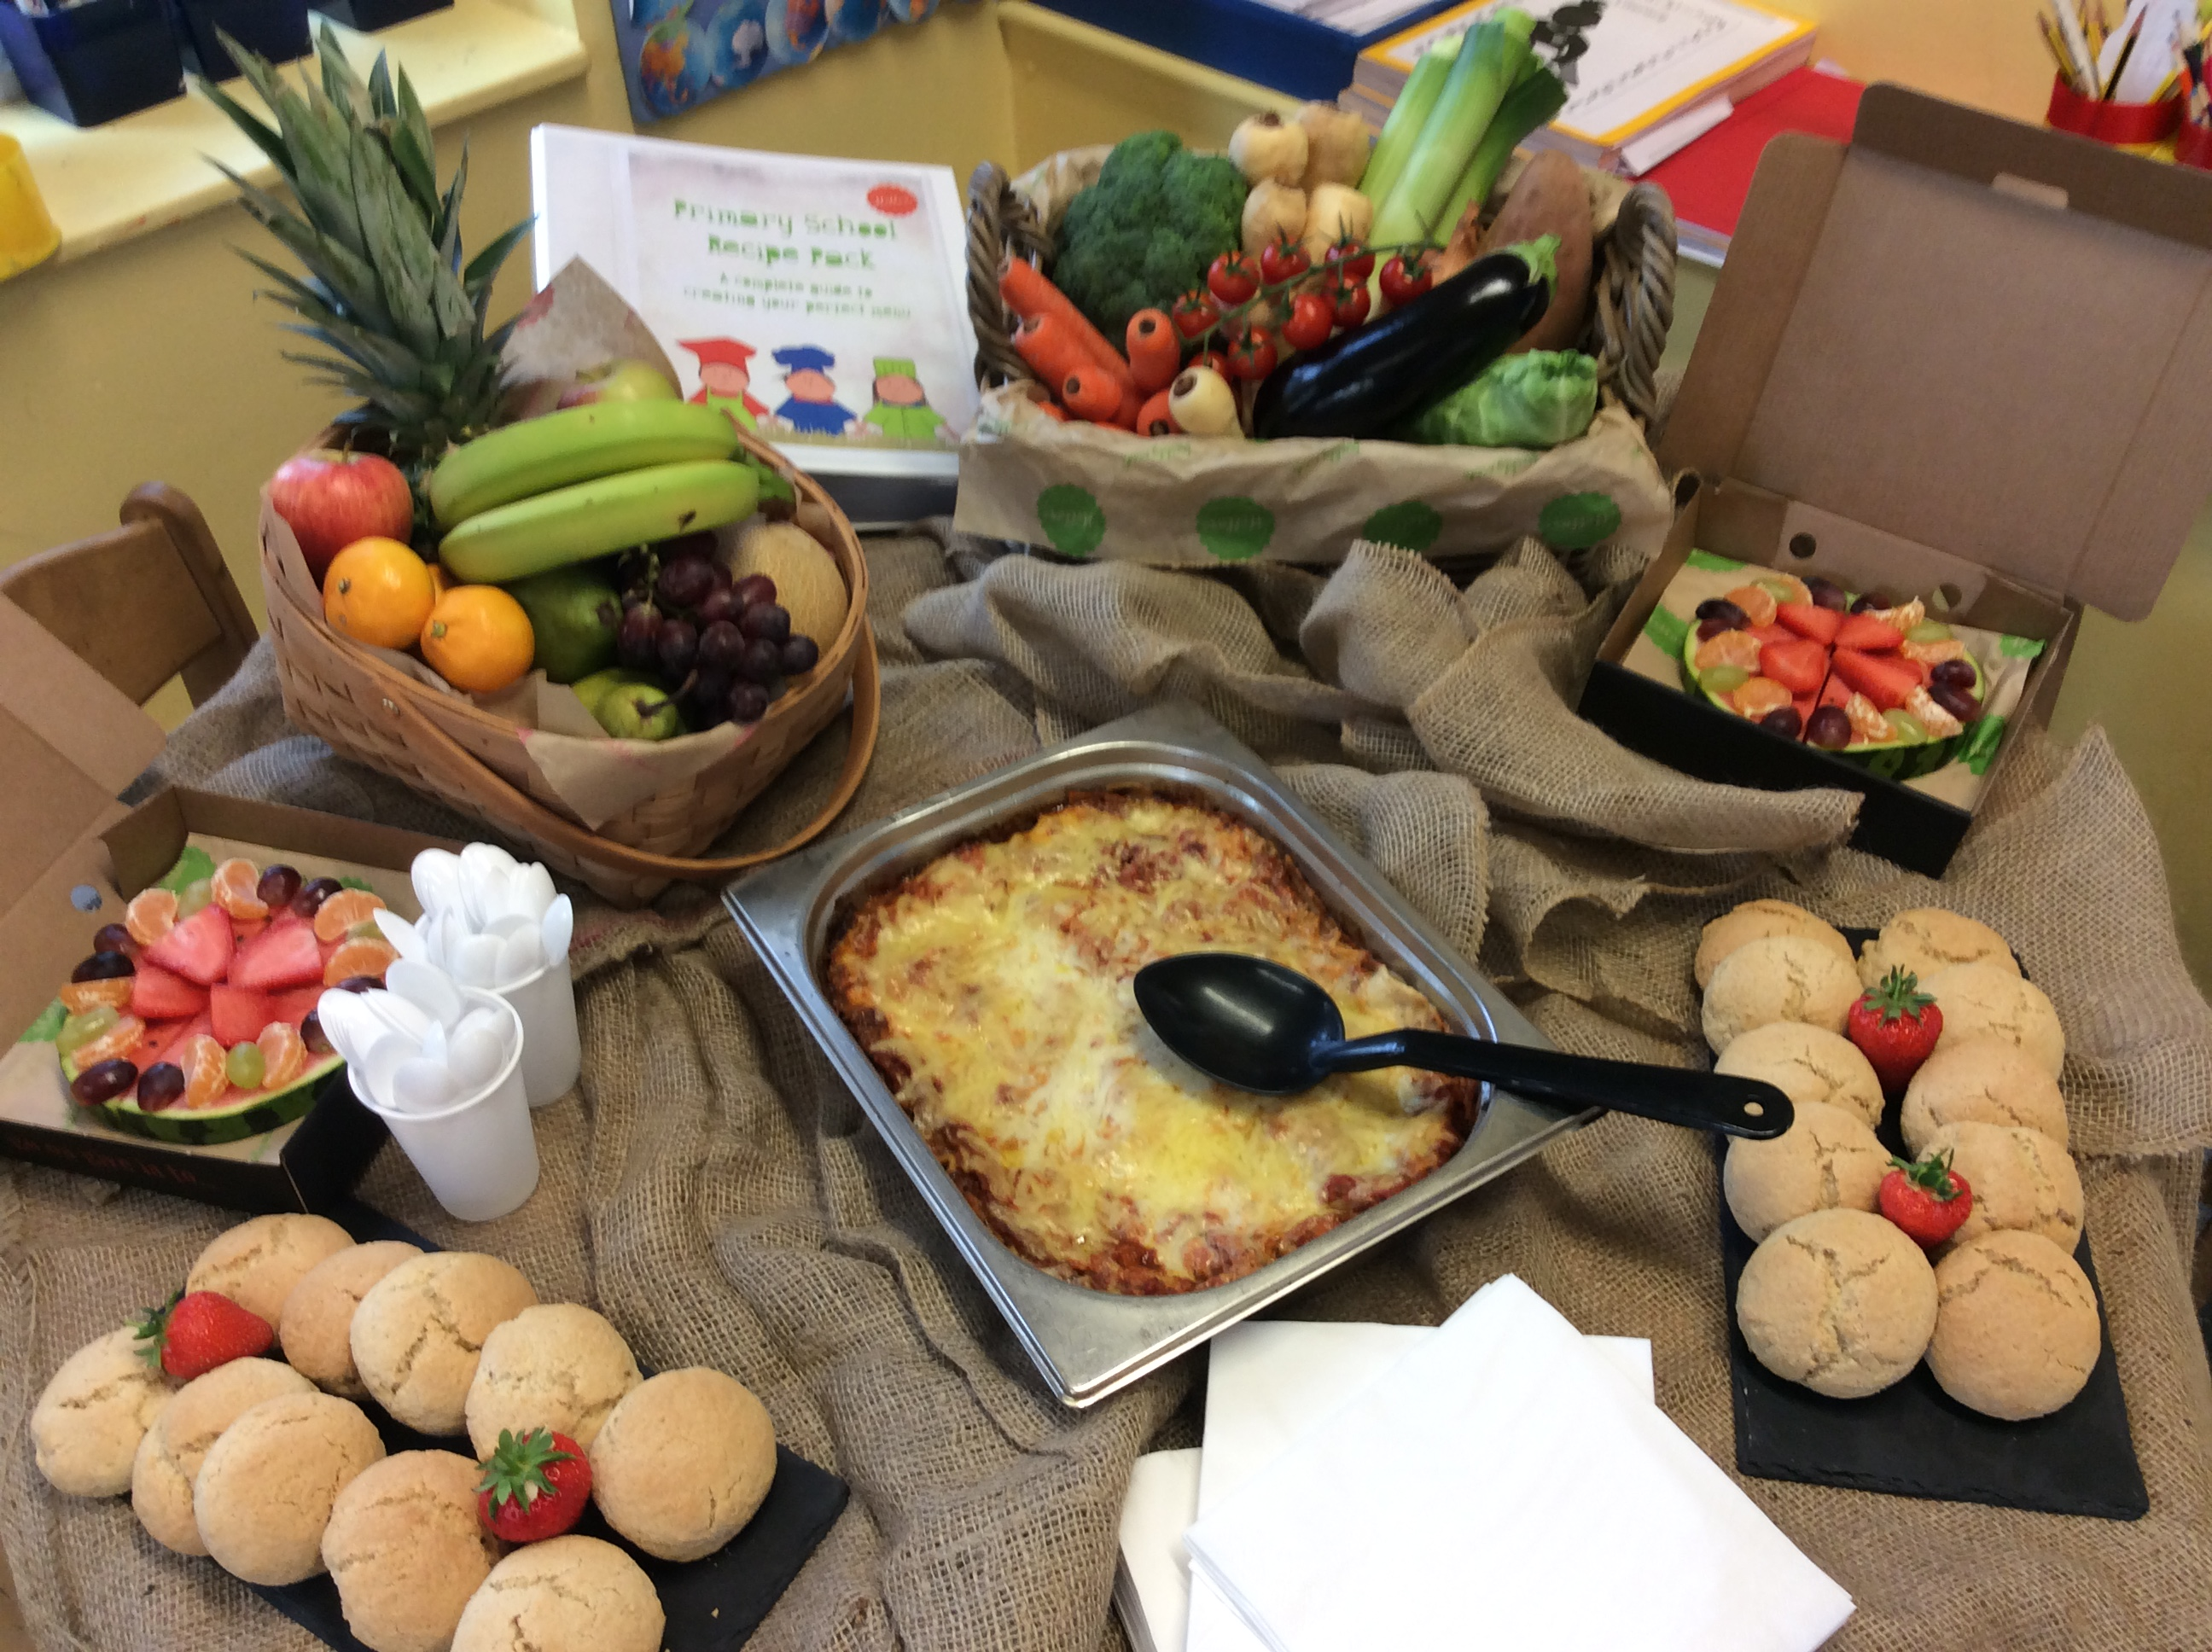 A taste of our primary school recipes